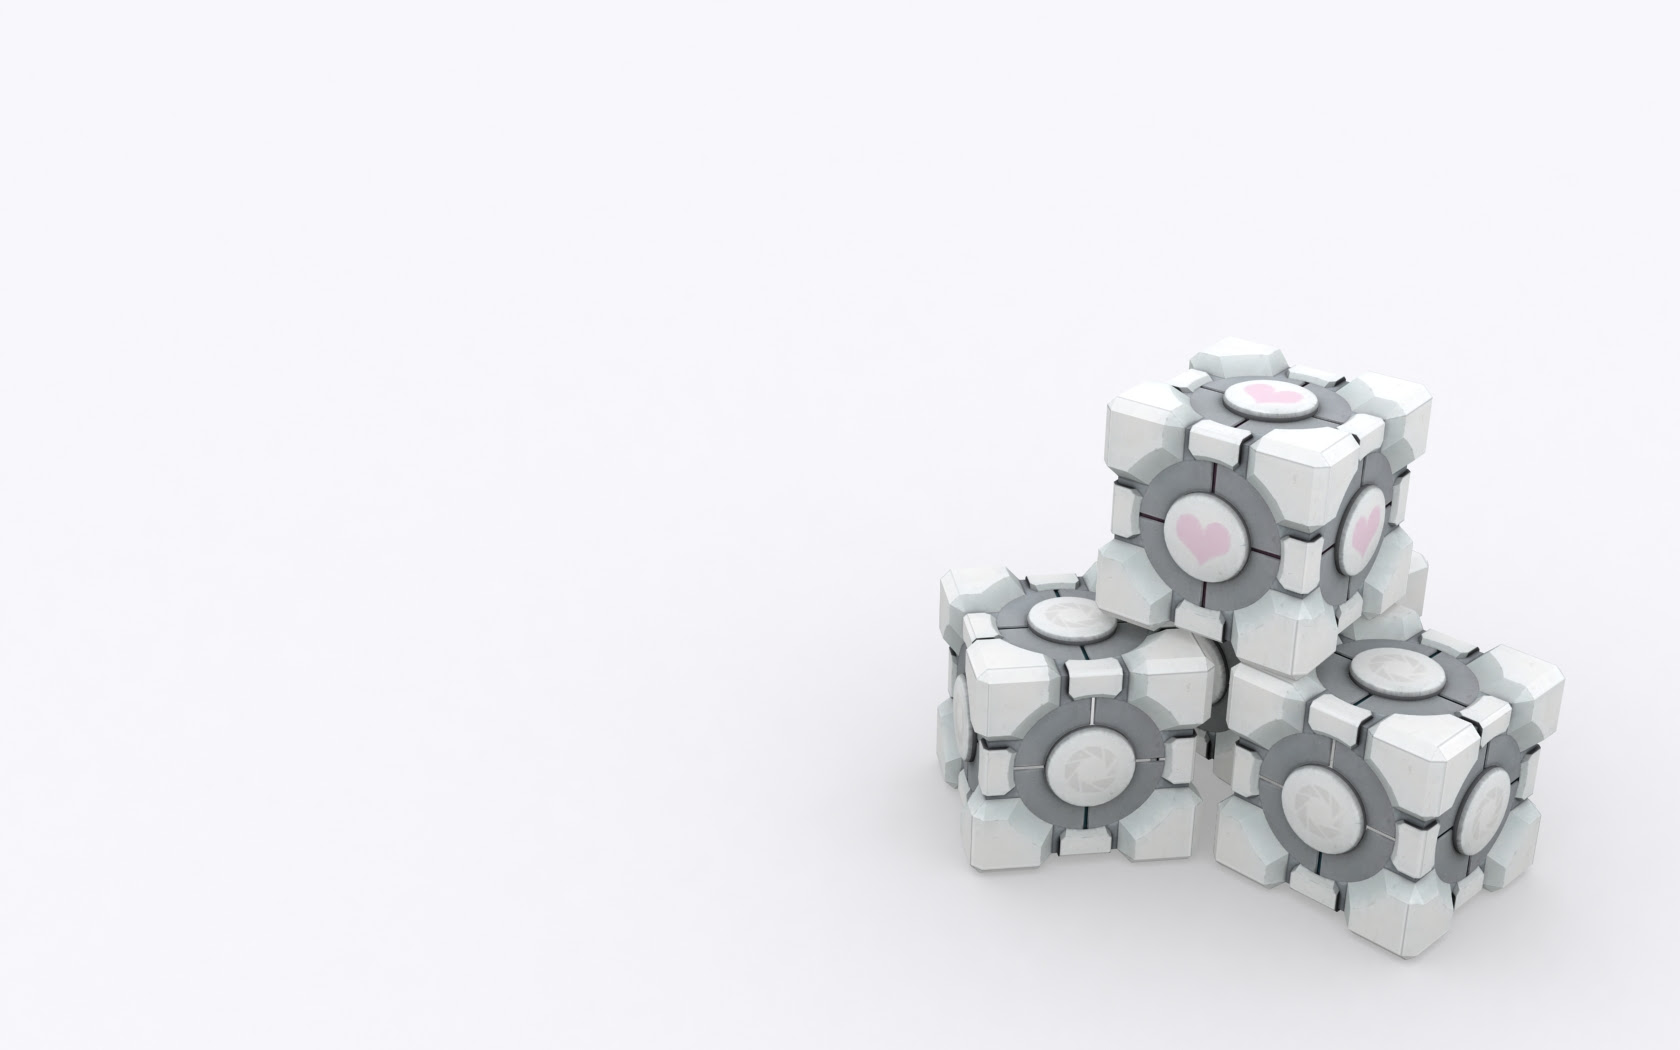 Of course we also need a Portal wallpaper with the companion cube, right?